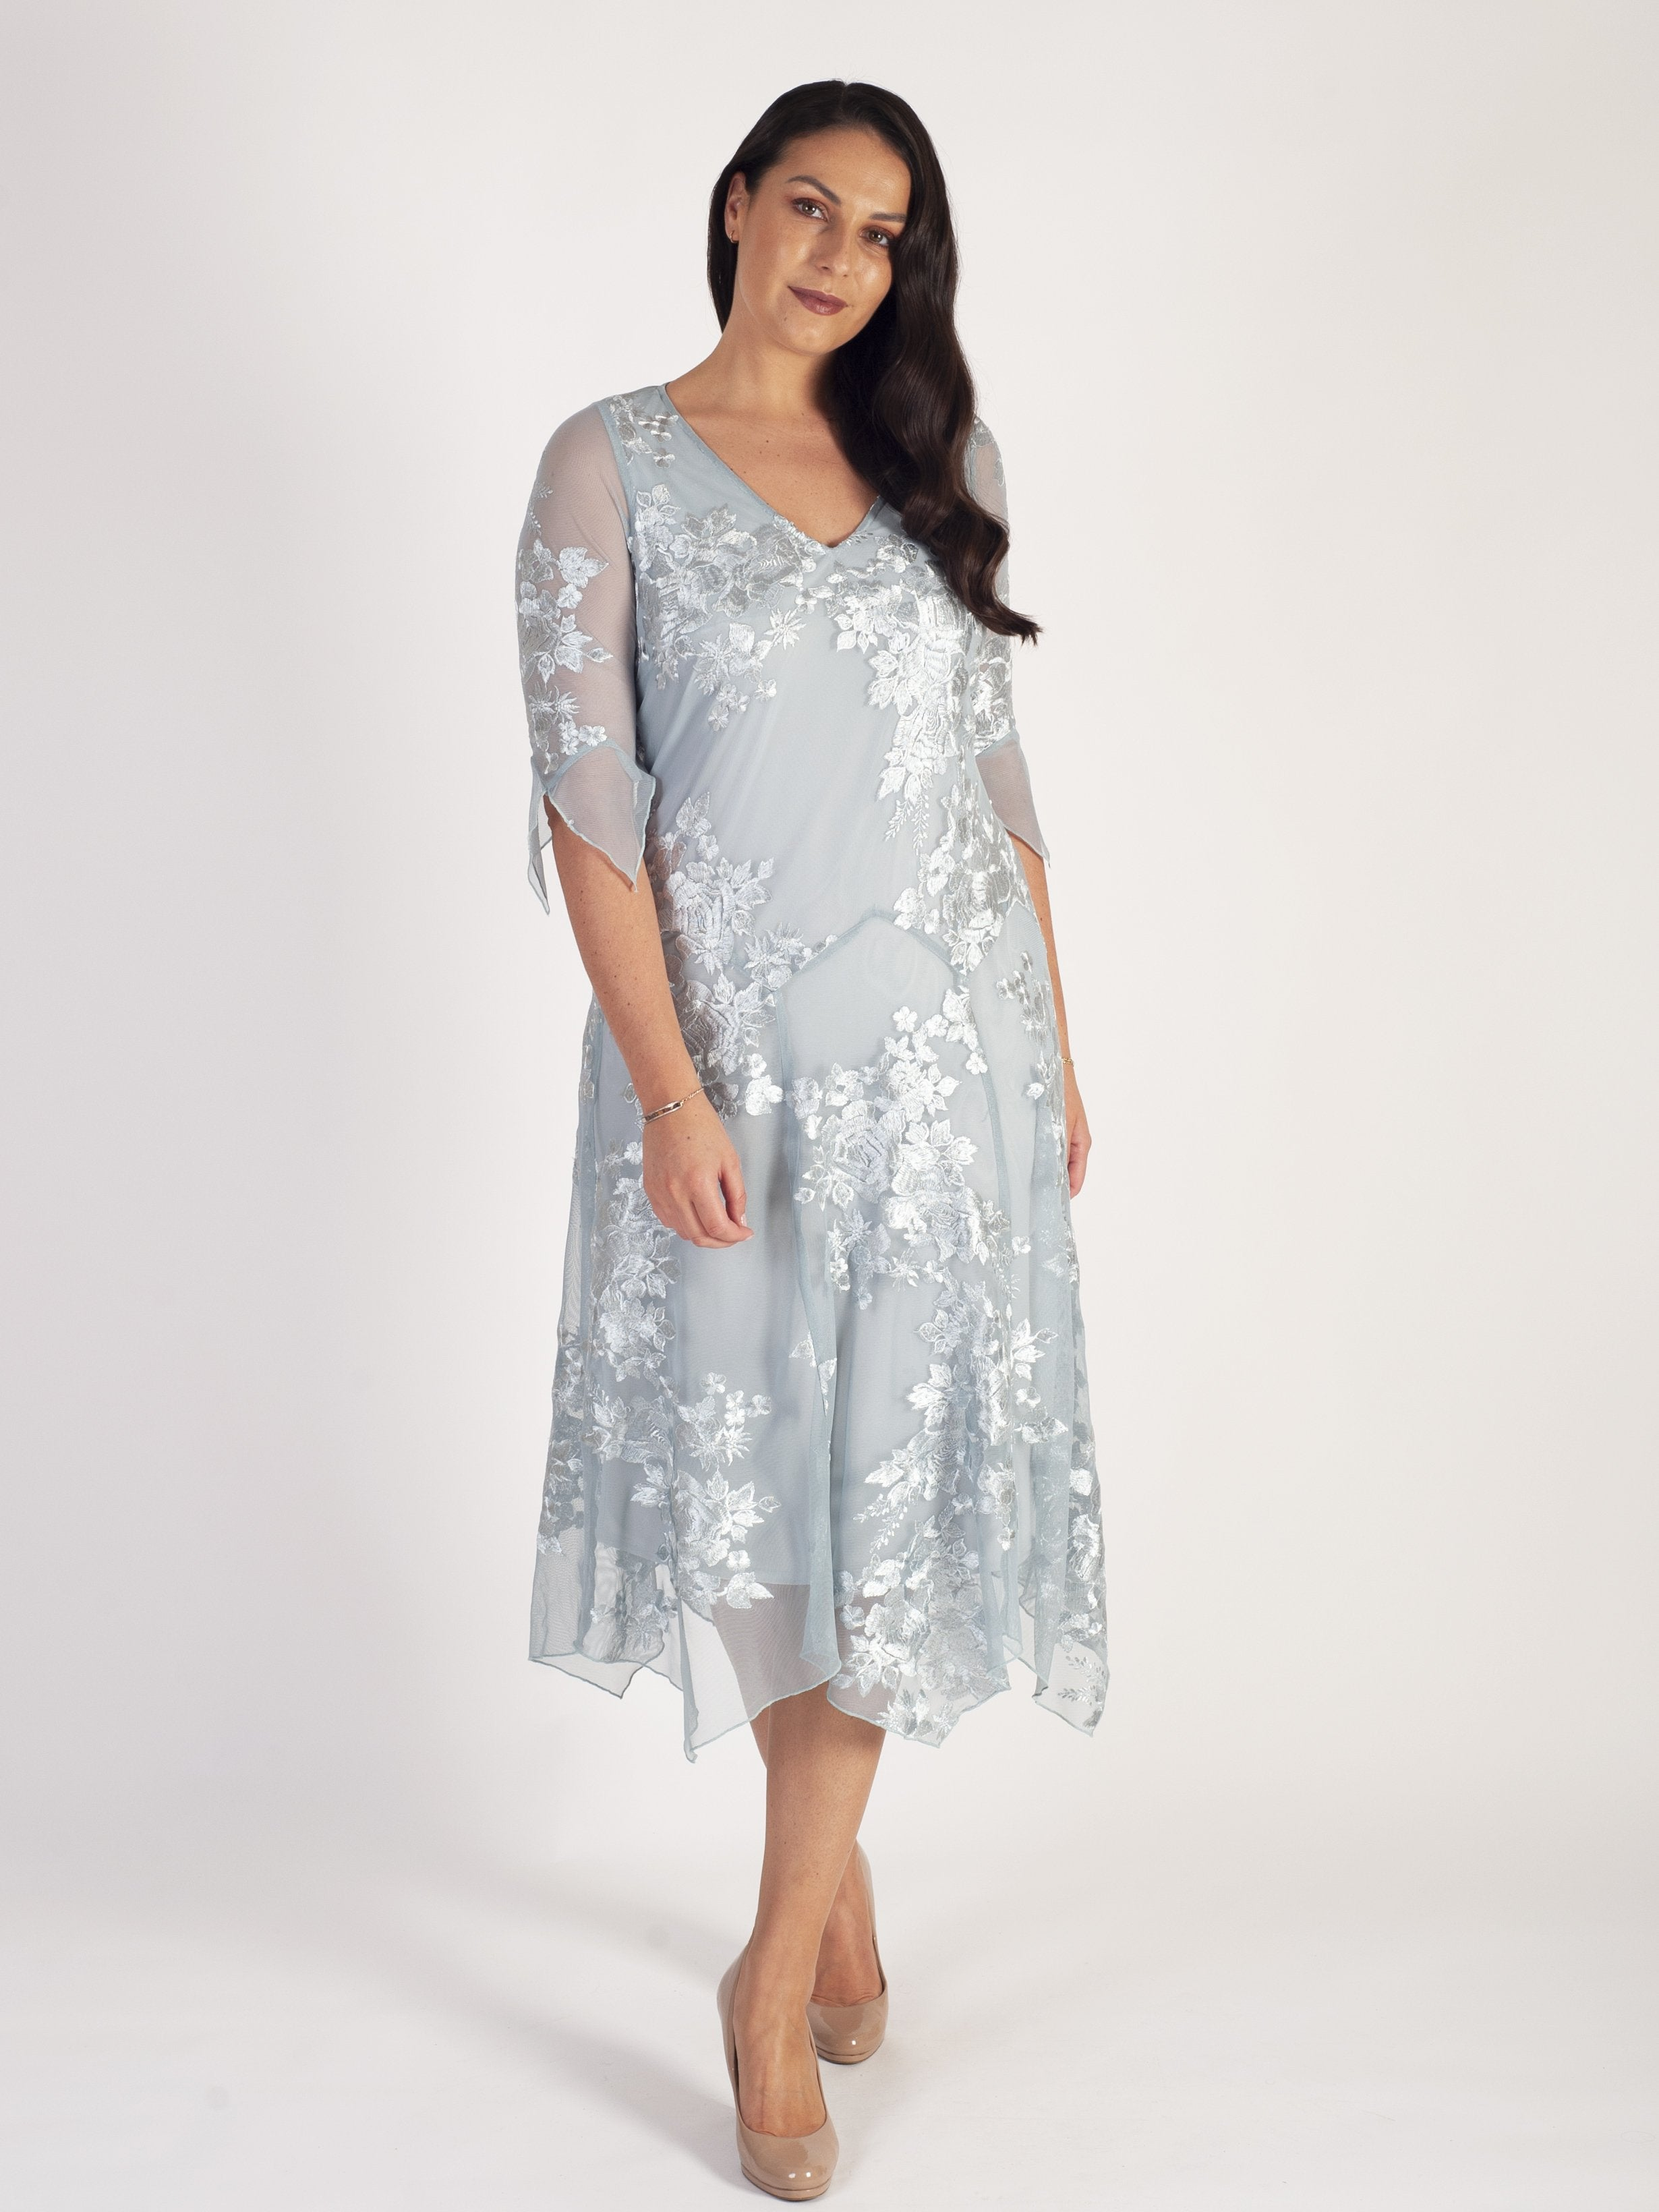 Aqua Trailing Floral Self Embellished Mesh Dress